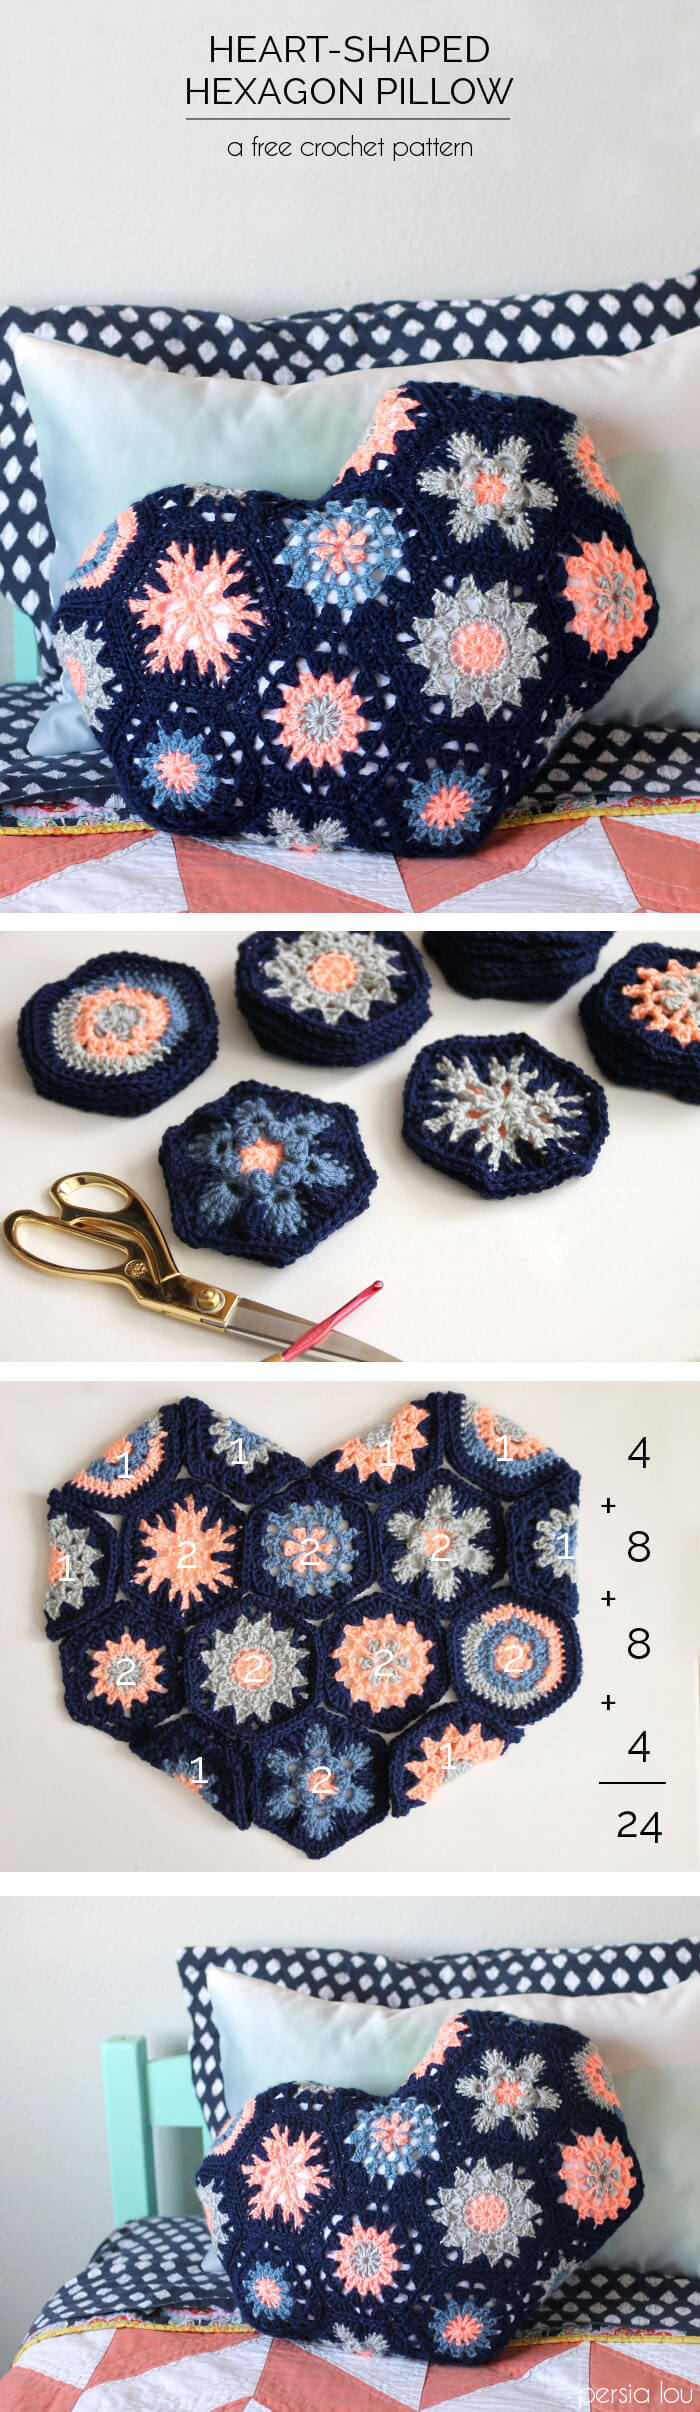 make your own heart shaped pillow from crochet hexagons! Full pattern at Persia Lou